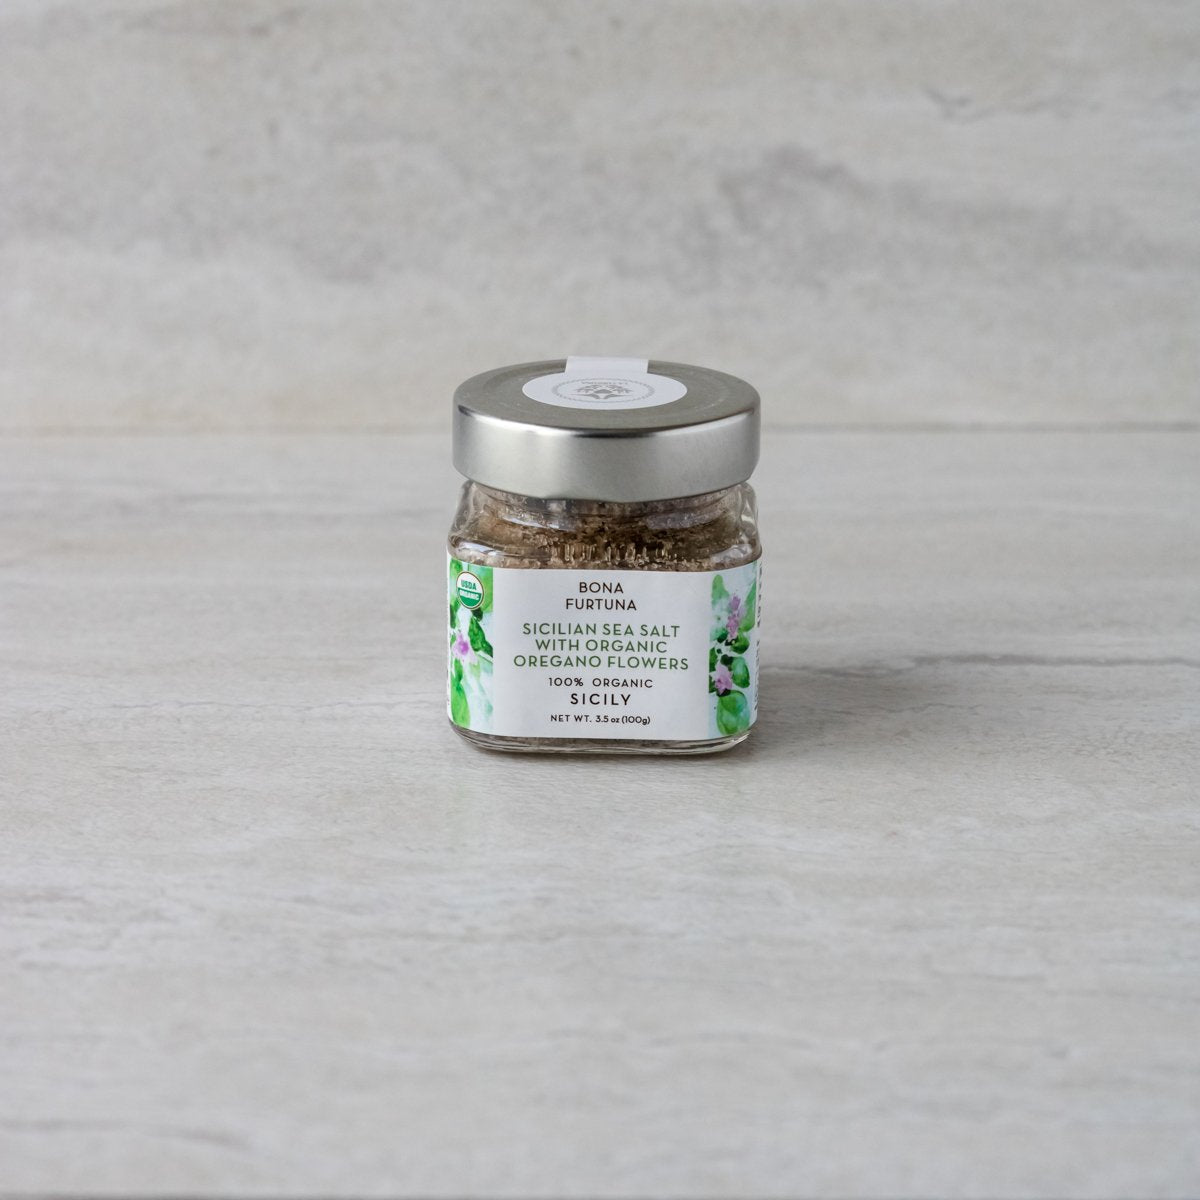 Sicilian Sea Salt with Organic Oregano Flowers